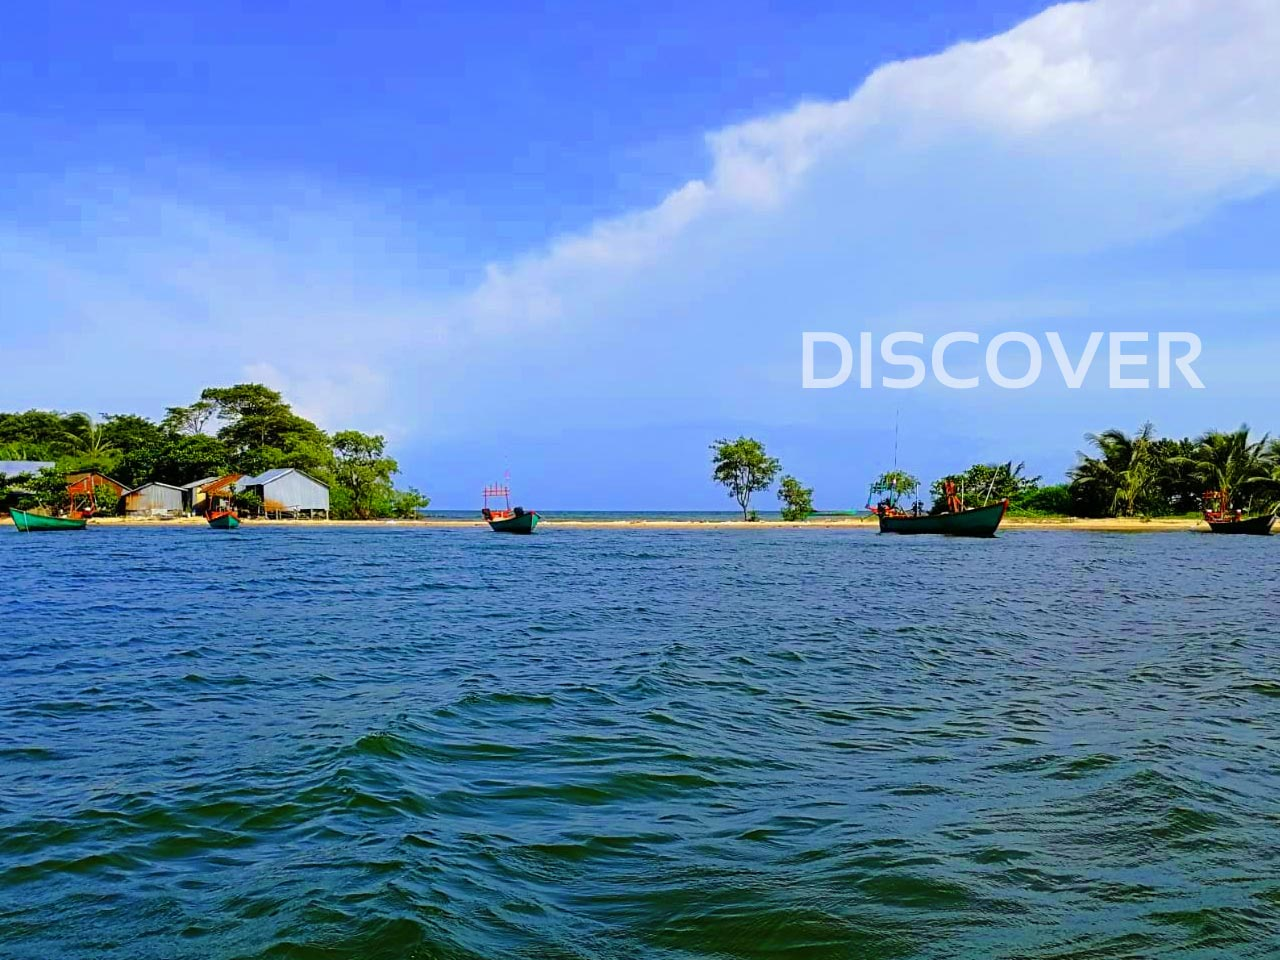 Discover Kep Adventures